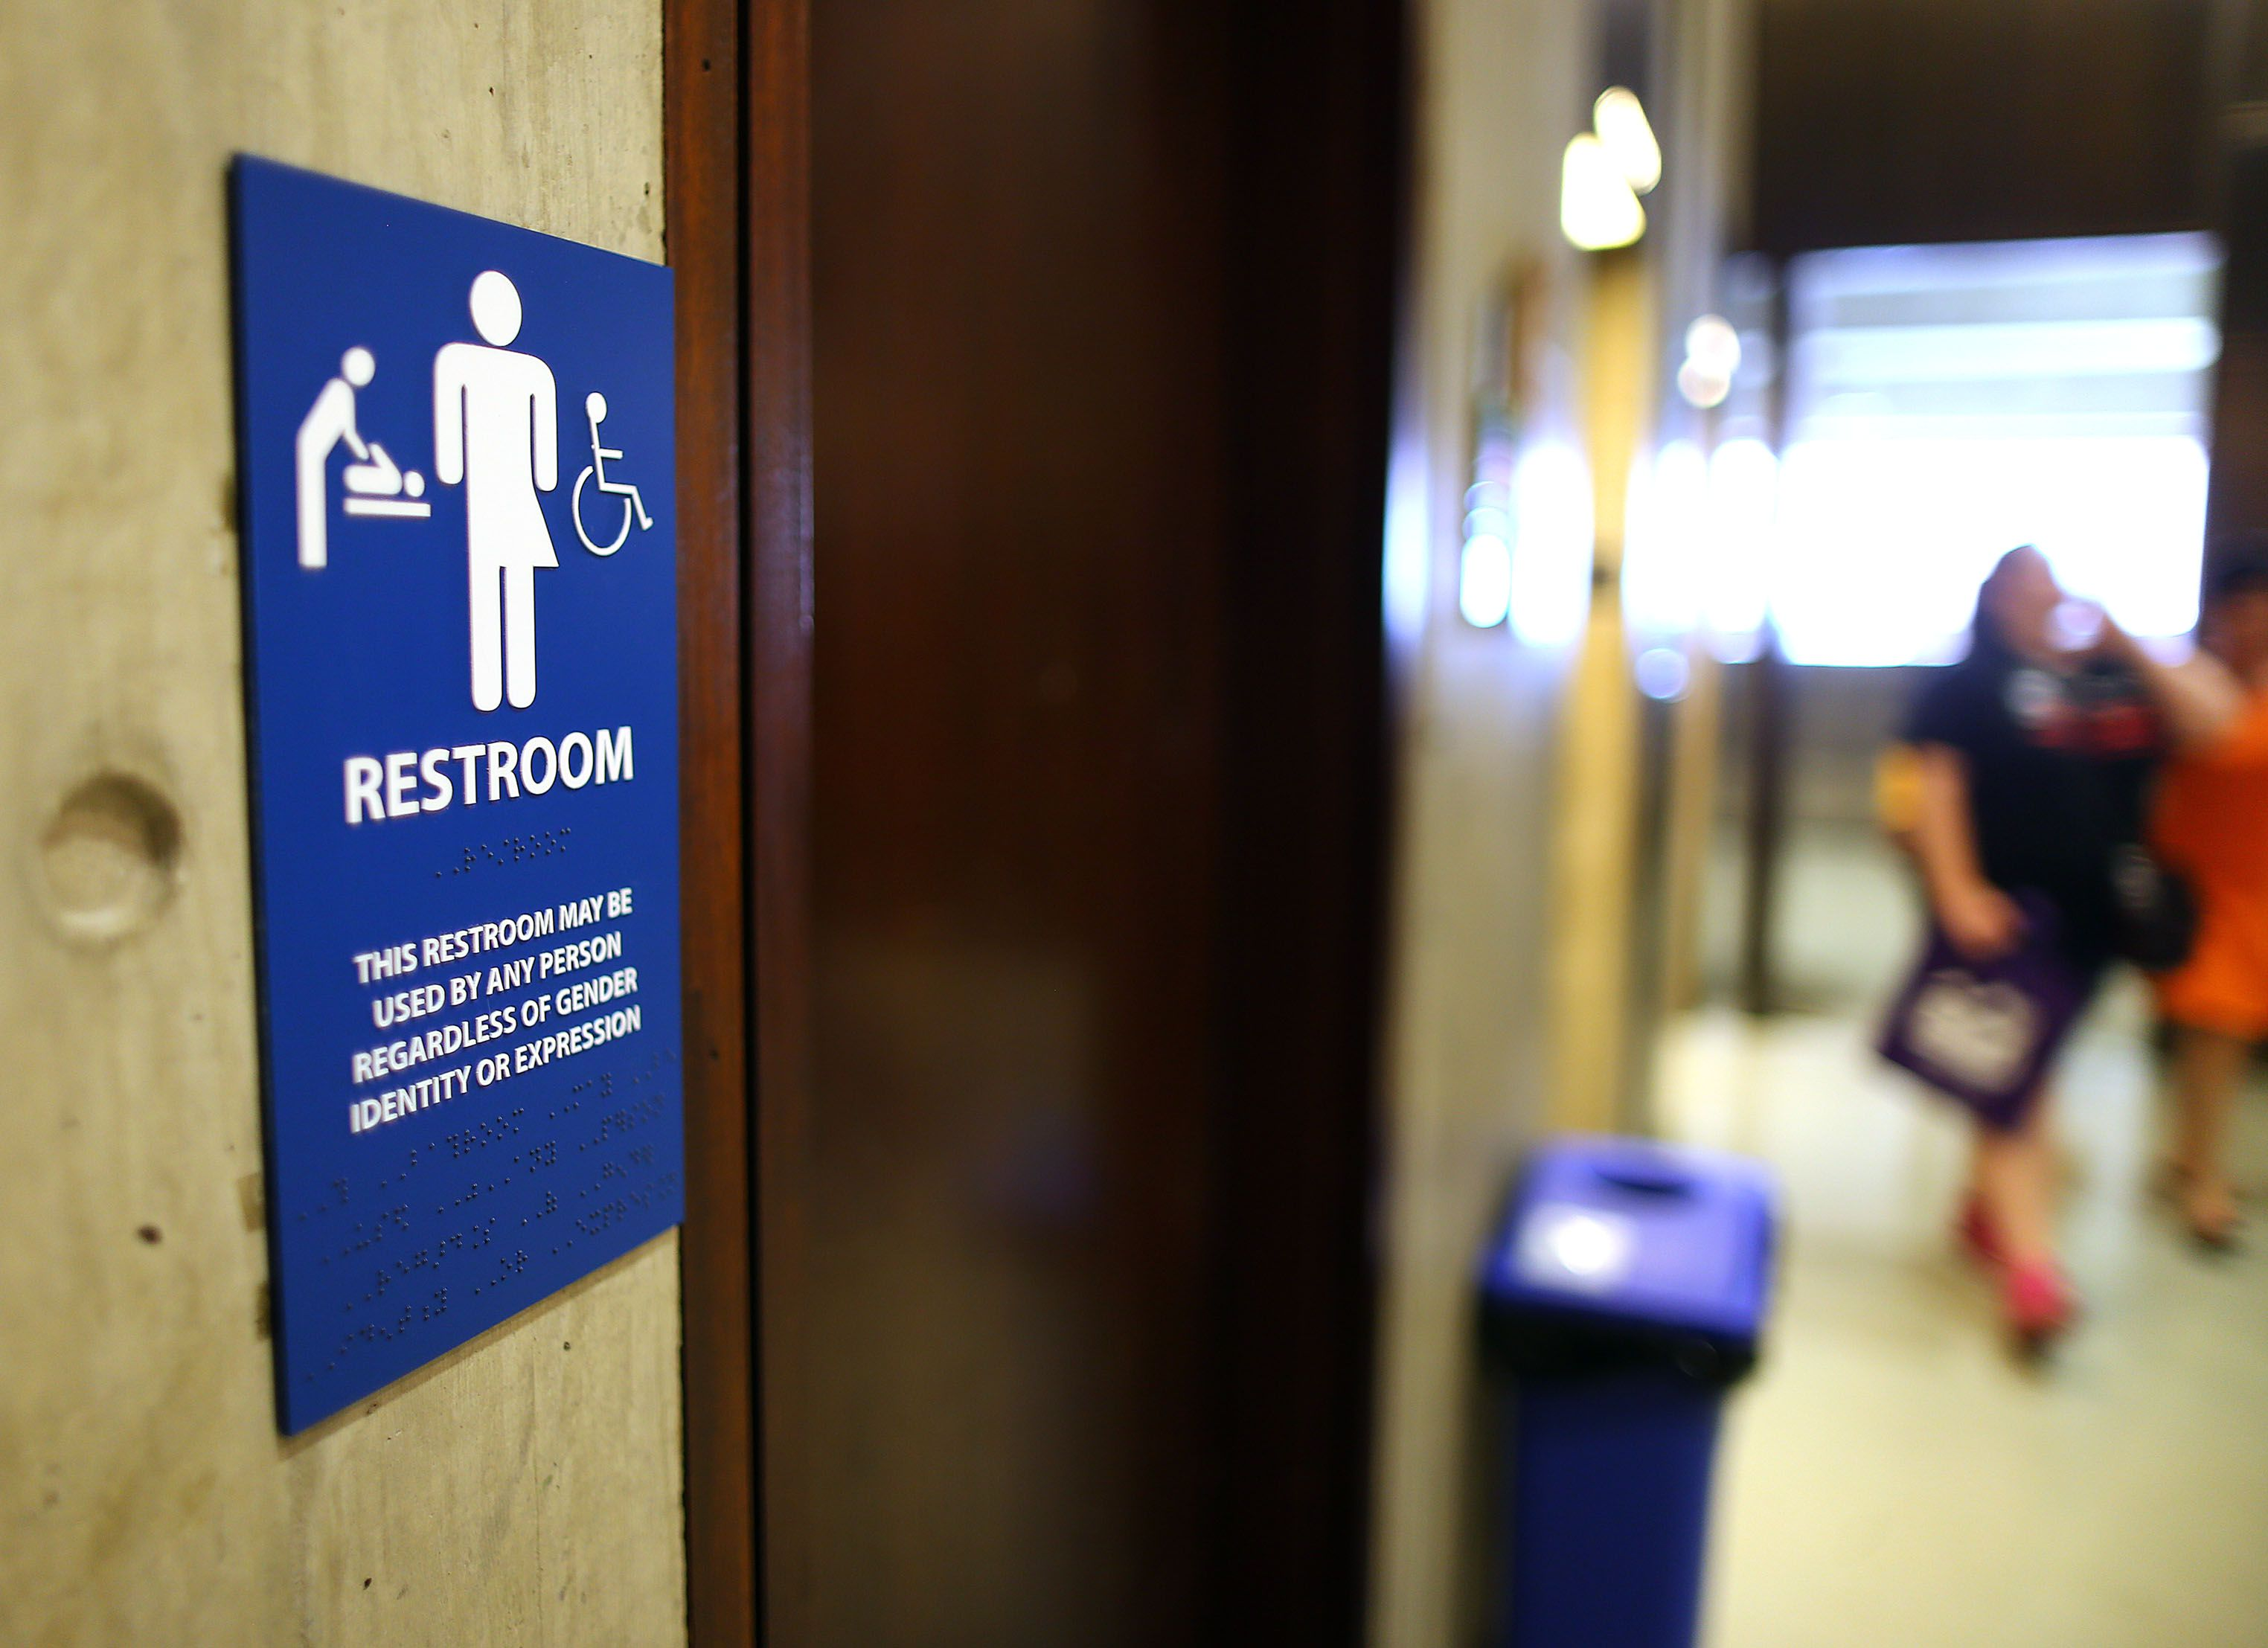 New Research Finds No Evidence That >> Study Finds No Link Between Transgender Rights Law And Bathroom